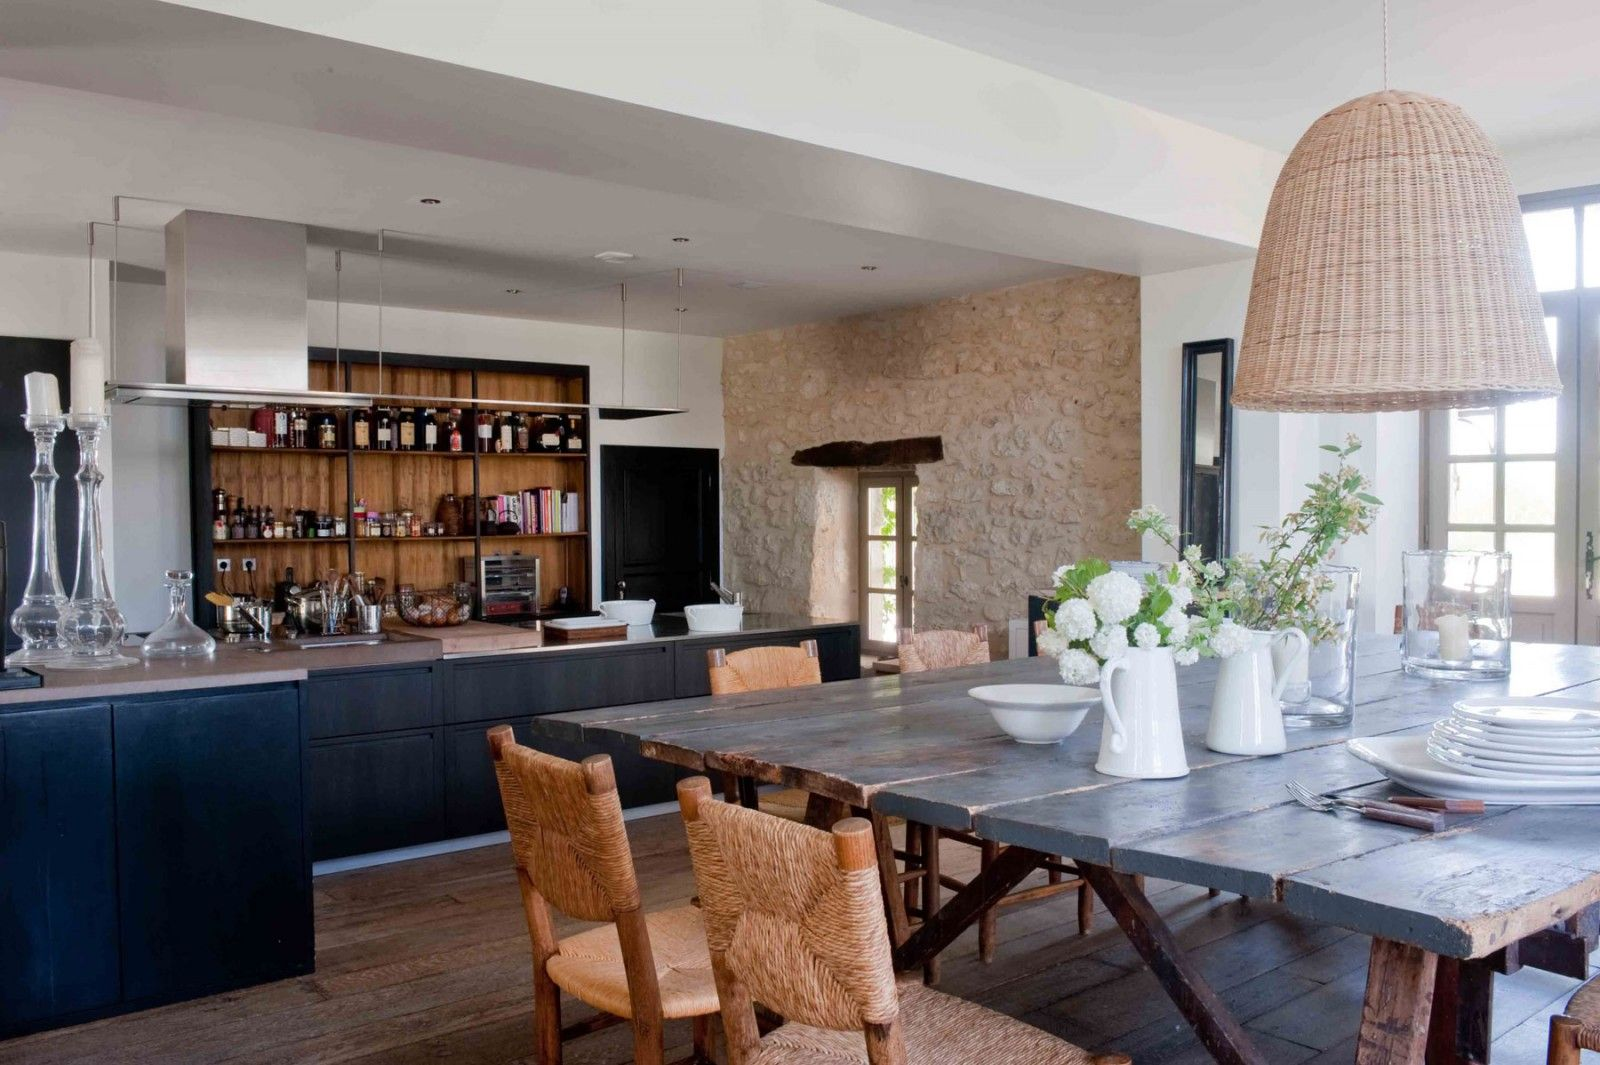 Open kitchen in a home in Gers, France designed by Sarah Lavoine